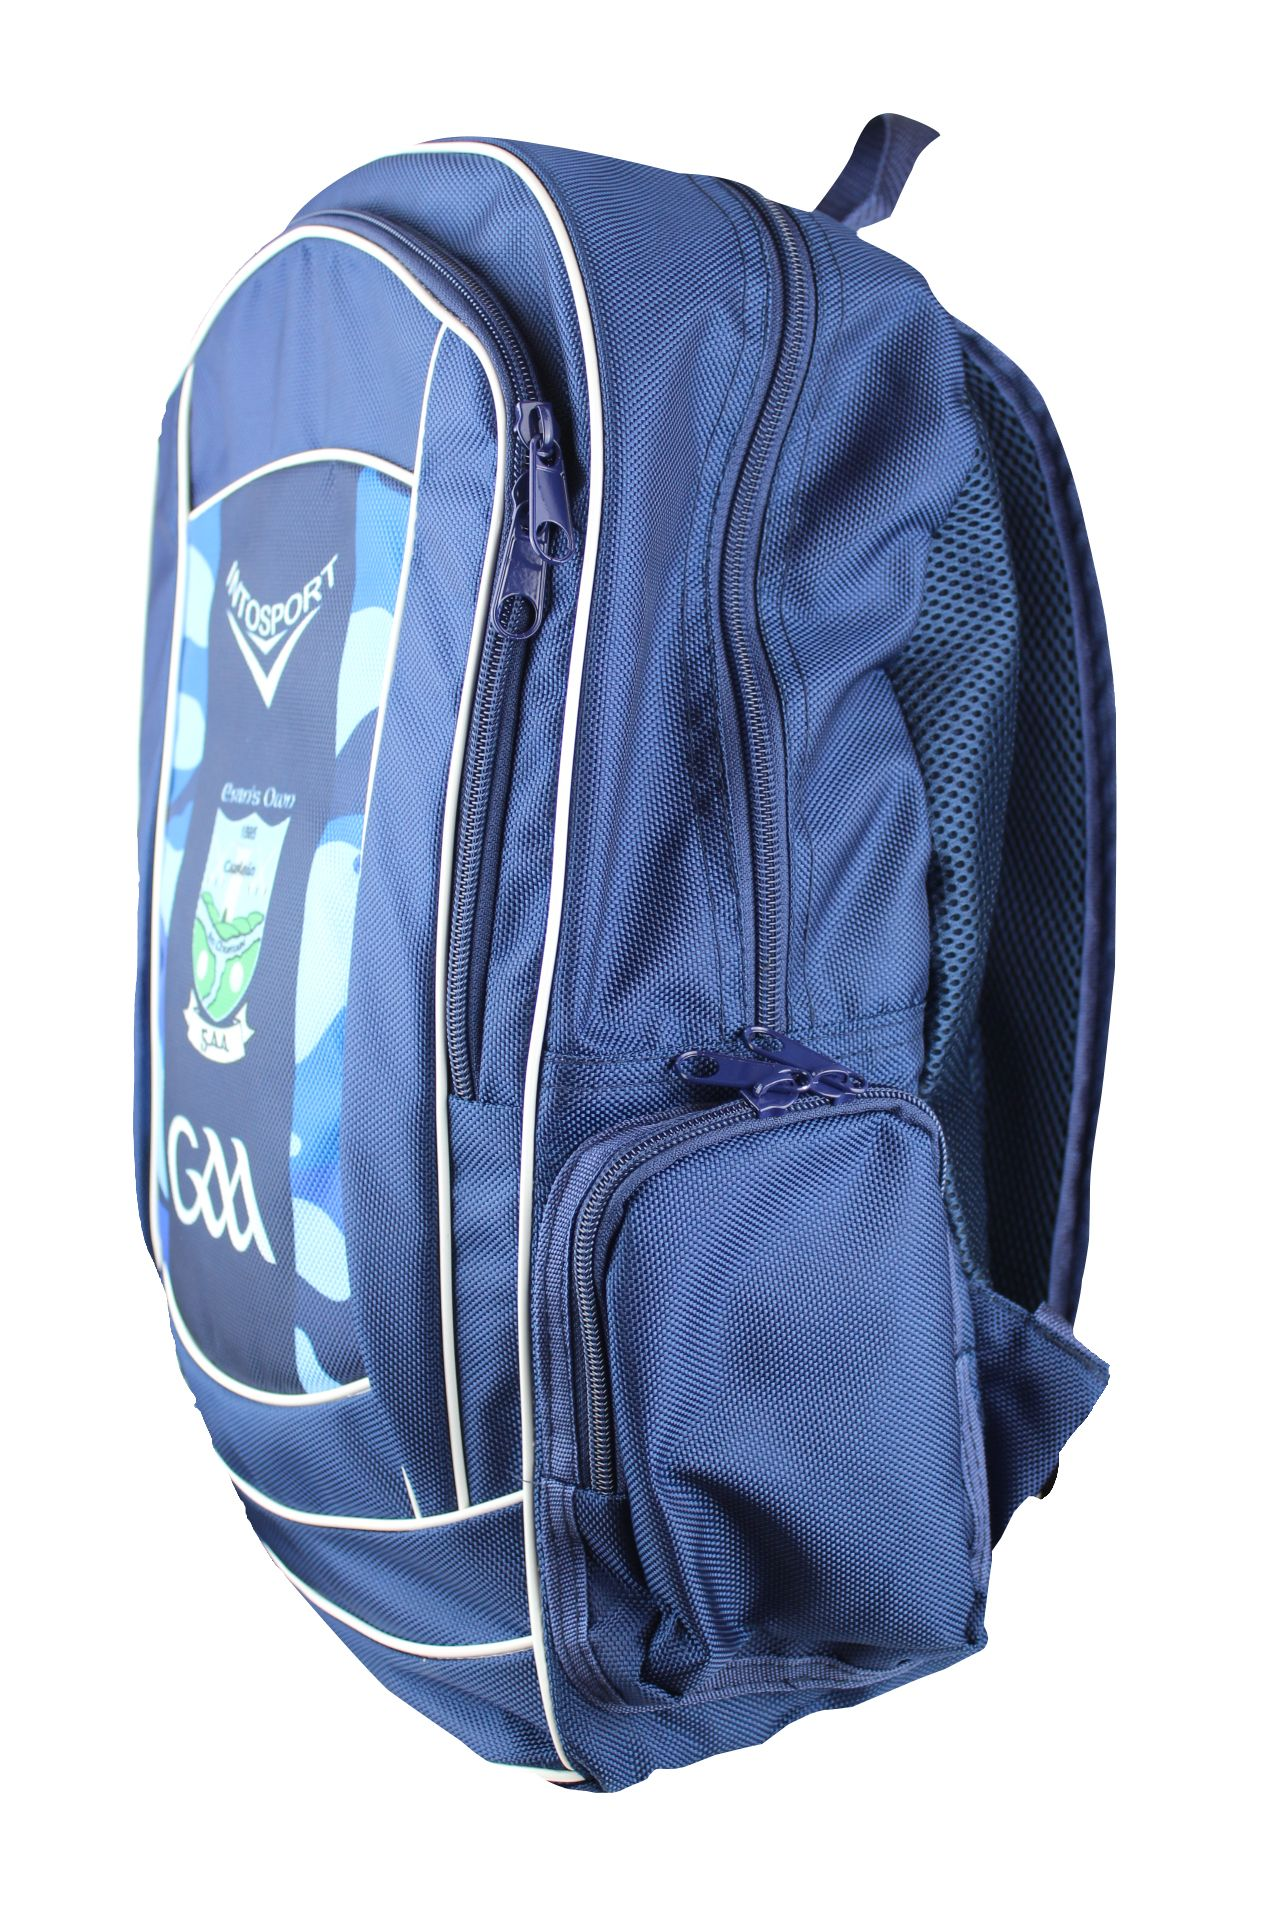 ERIN'S OWN BACKPACK SIZE VIEW 1.jpg